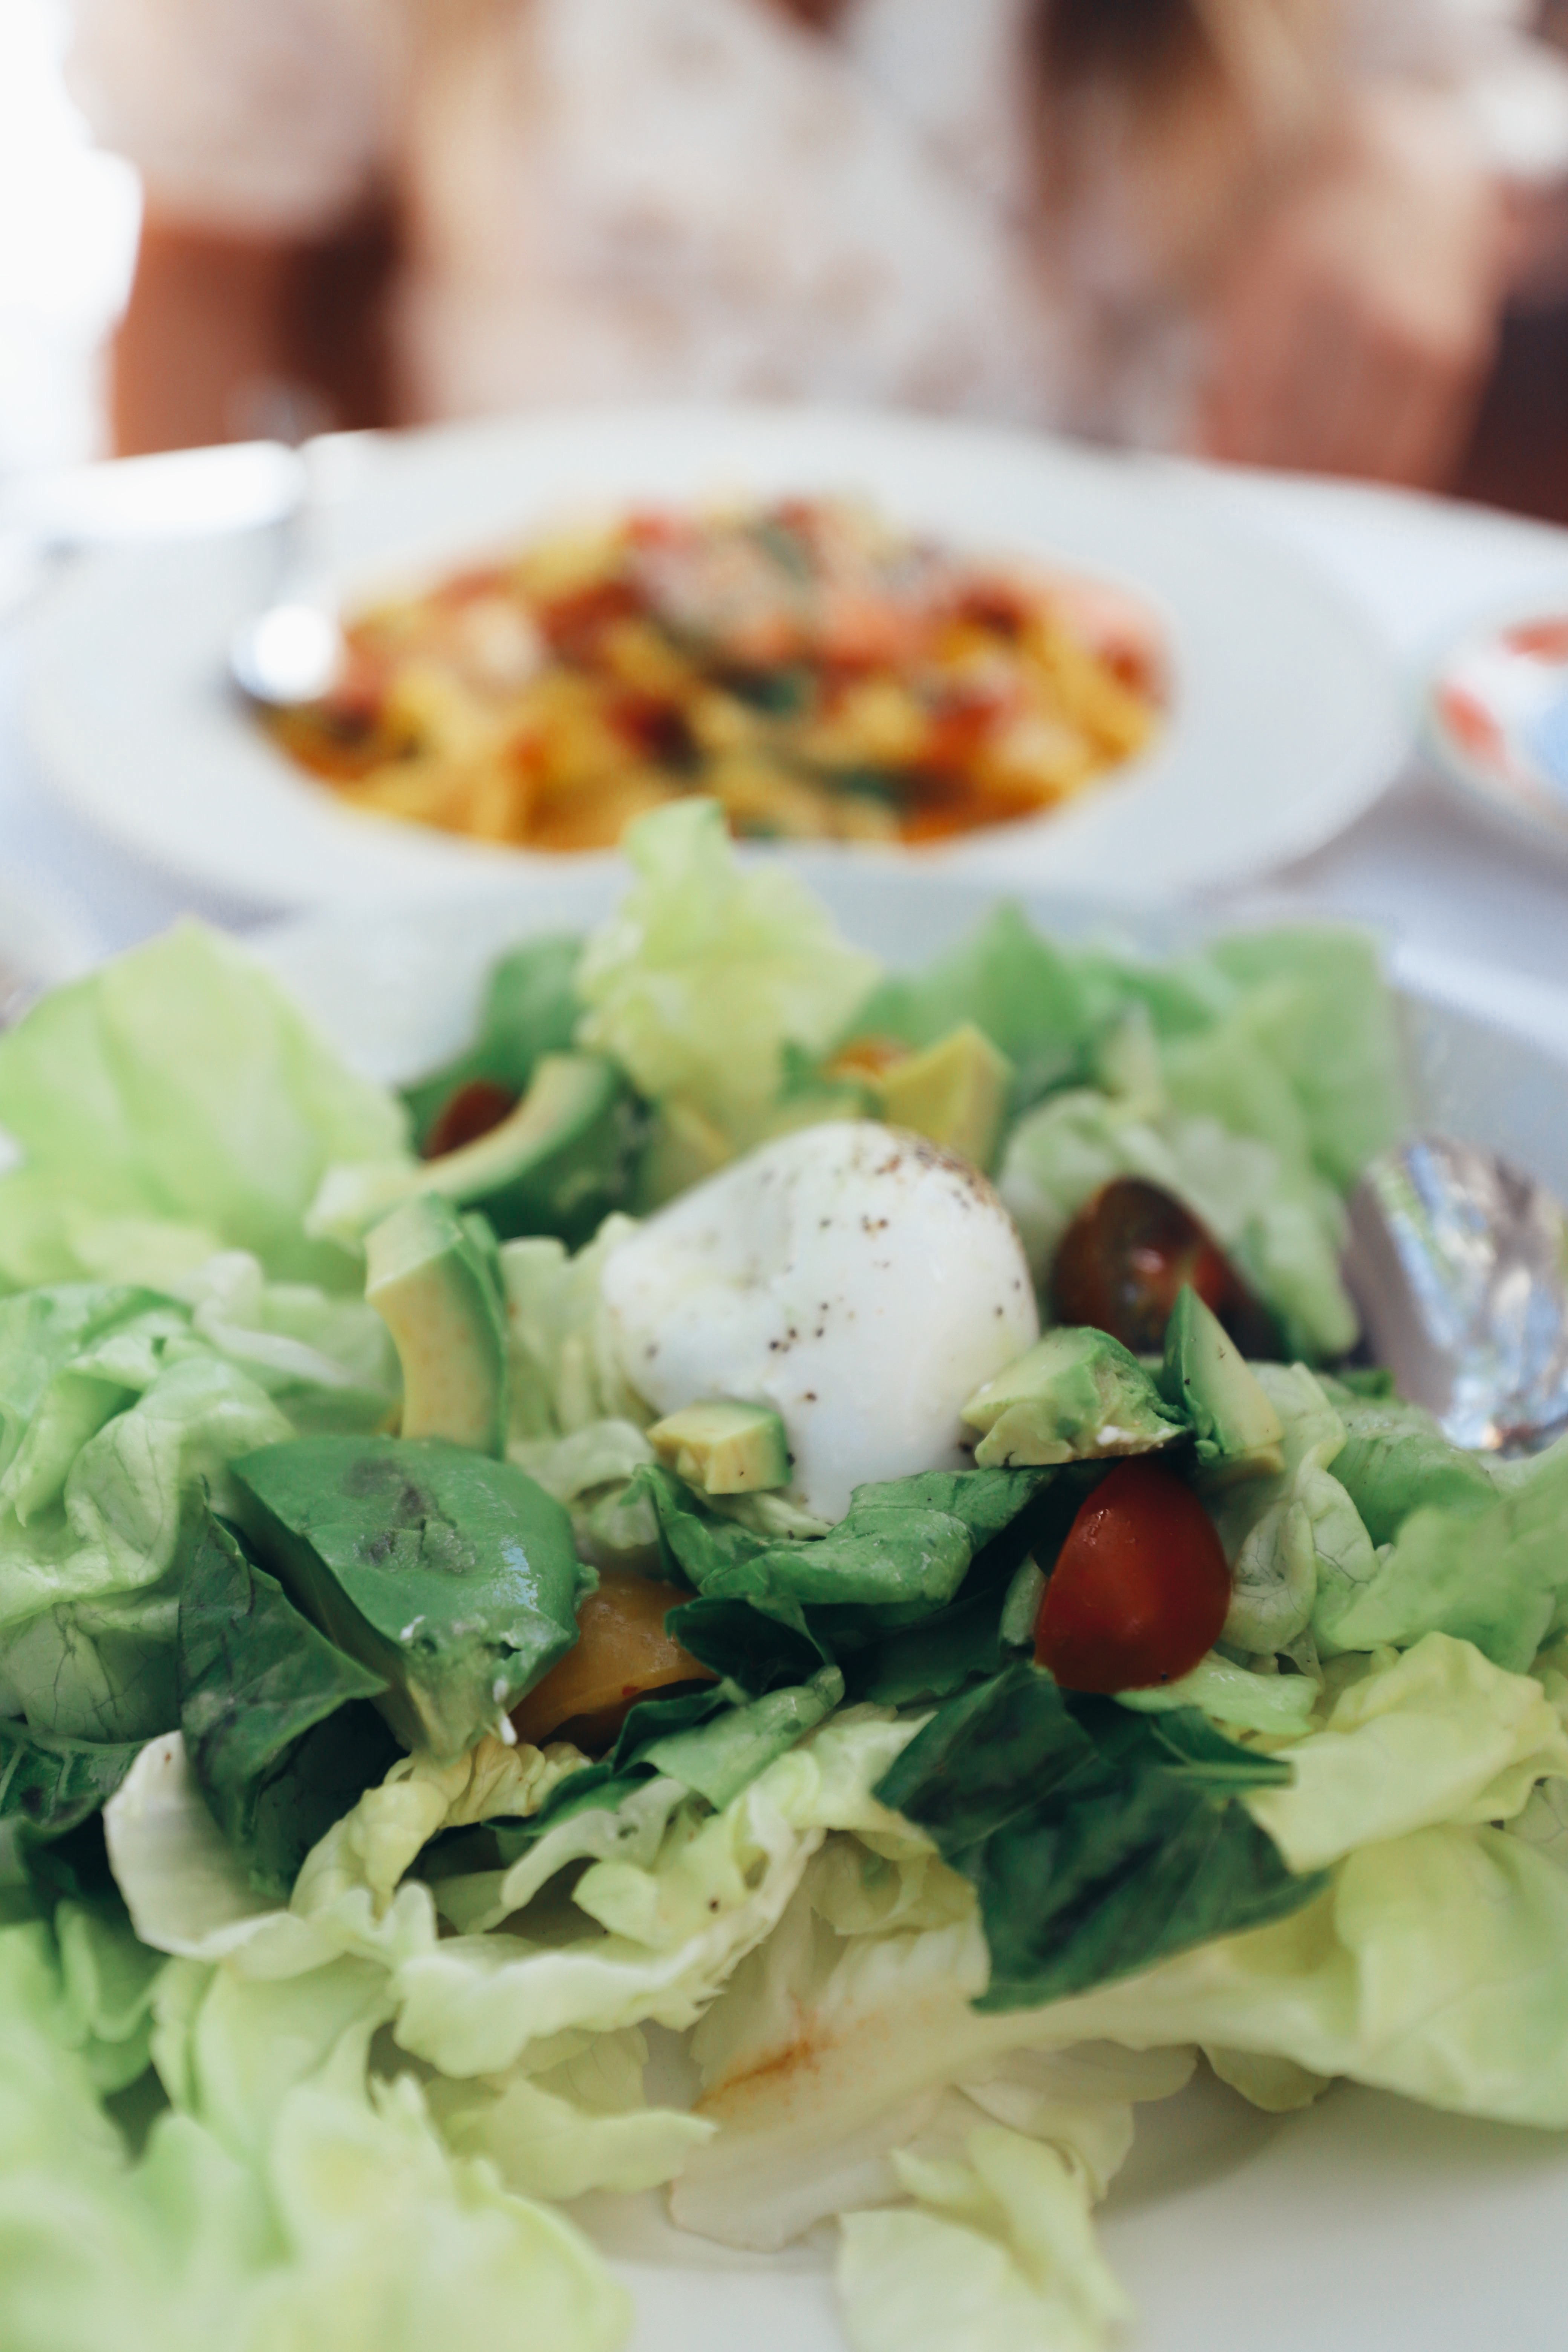 a close up of a salad with egg on it and tomatoes